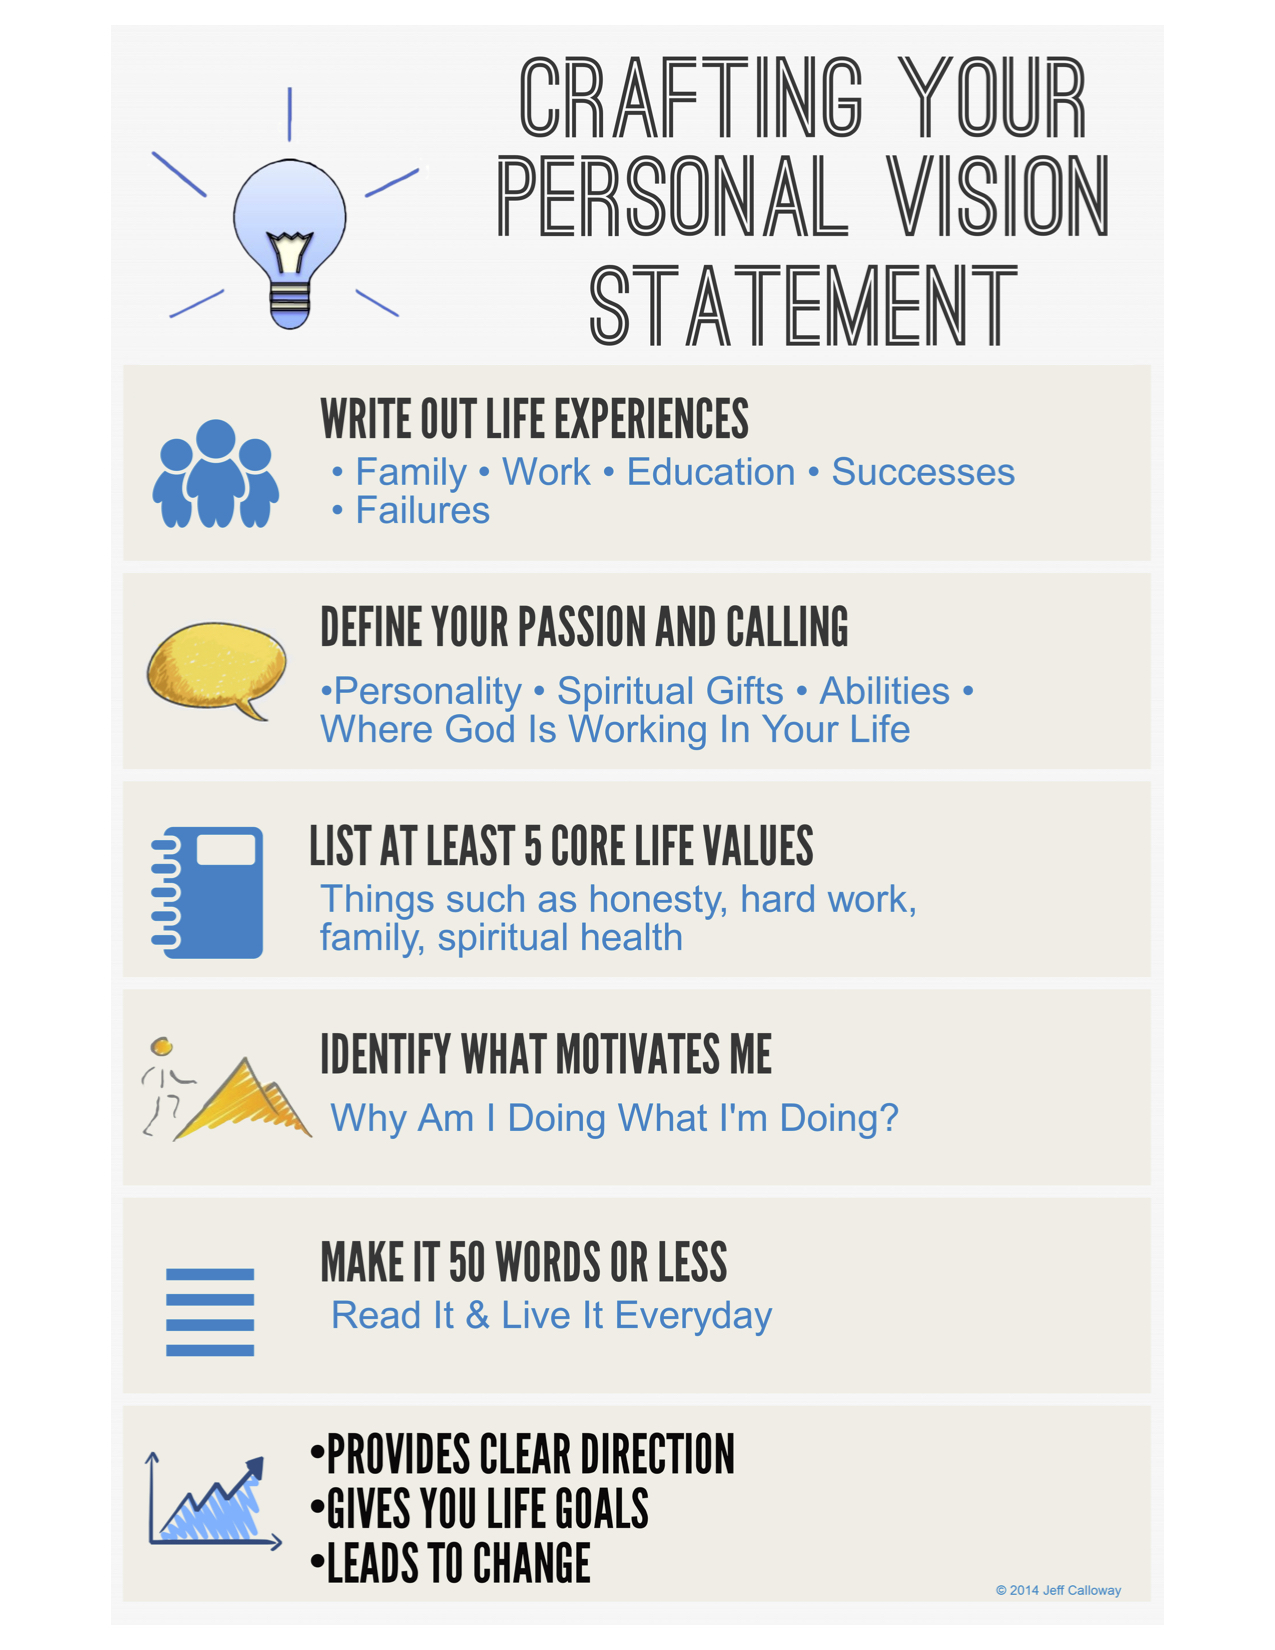 crafting a personal vision statement jeff calloway vision infographic